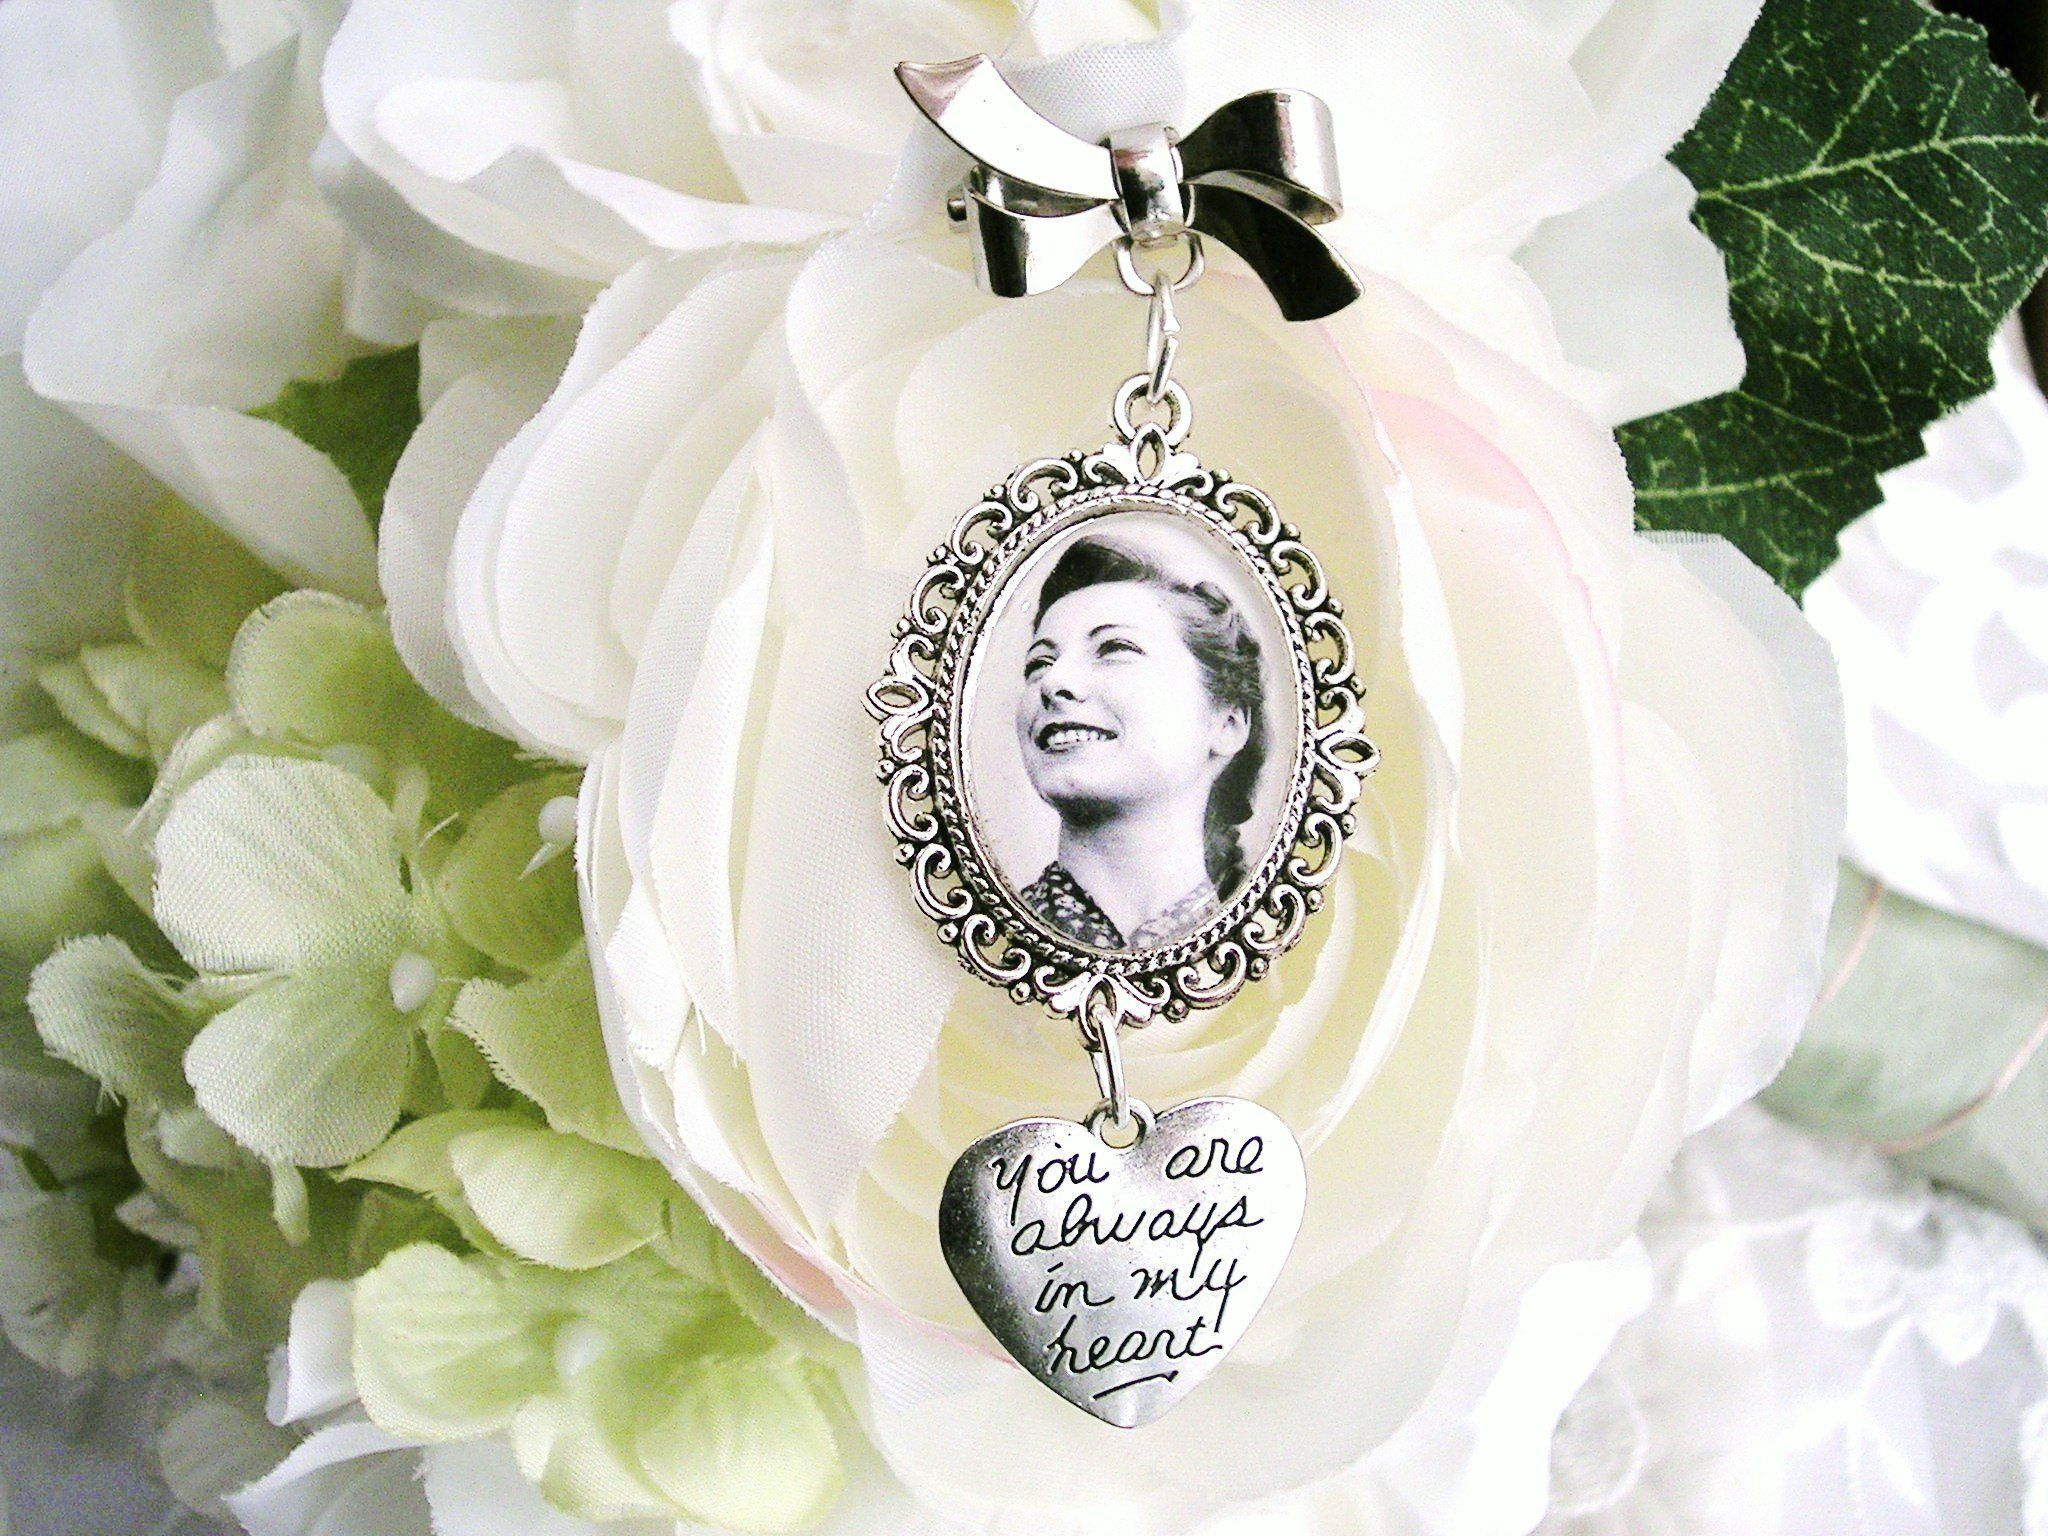 Bride bouquet memory charm wedding bouquet charm gift for